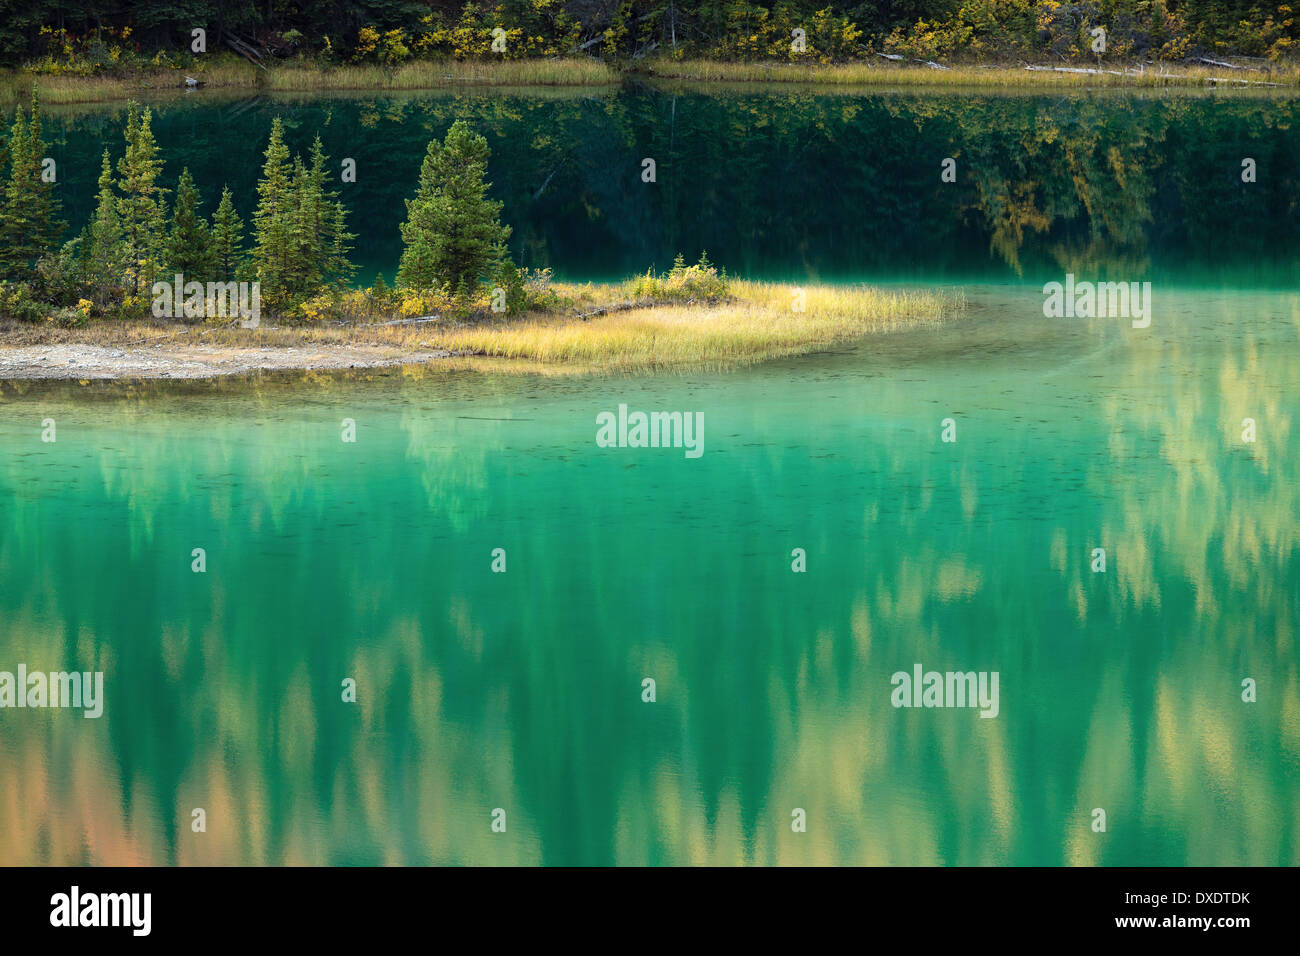 Le lac Emerald, nr Carcross, au Yukon, Canada Photo Stock